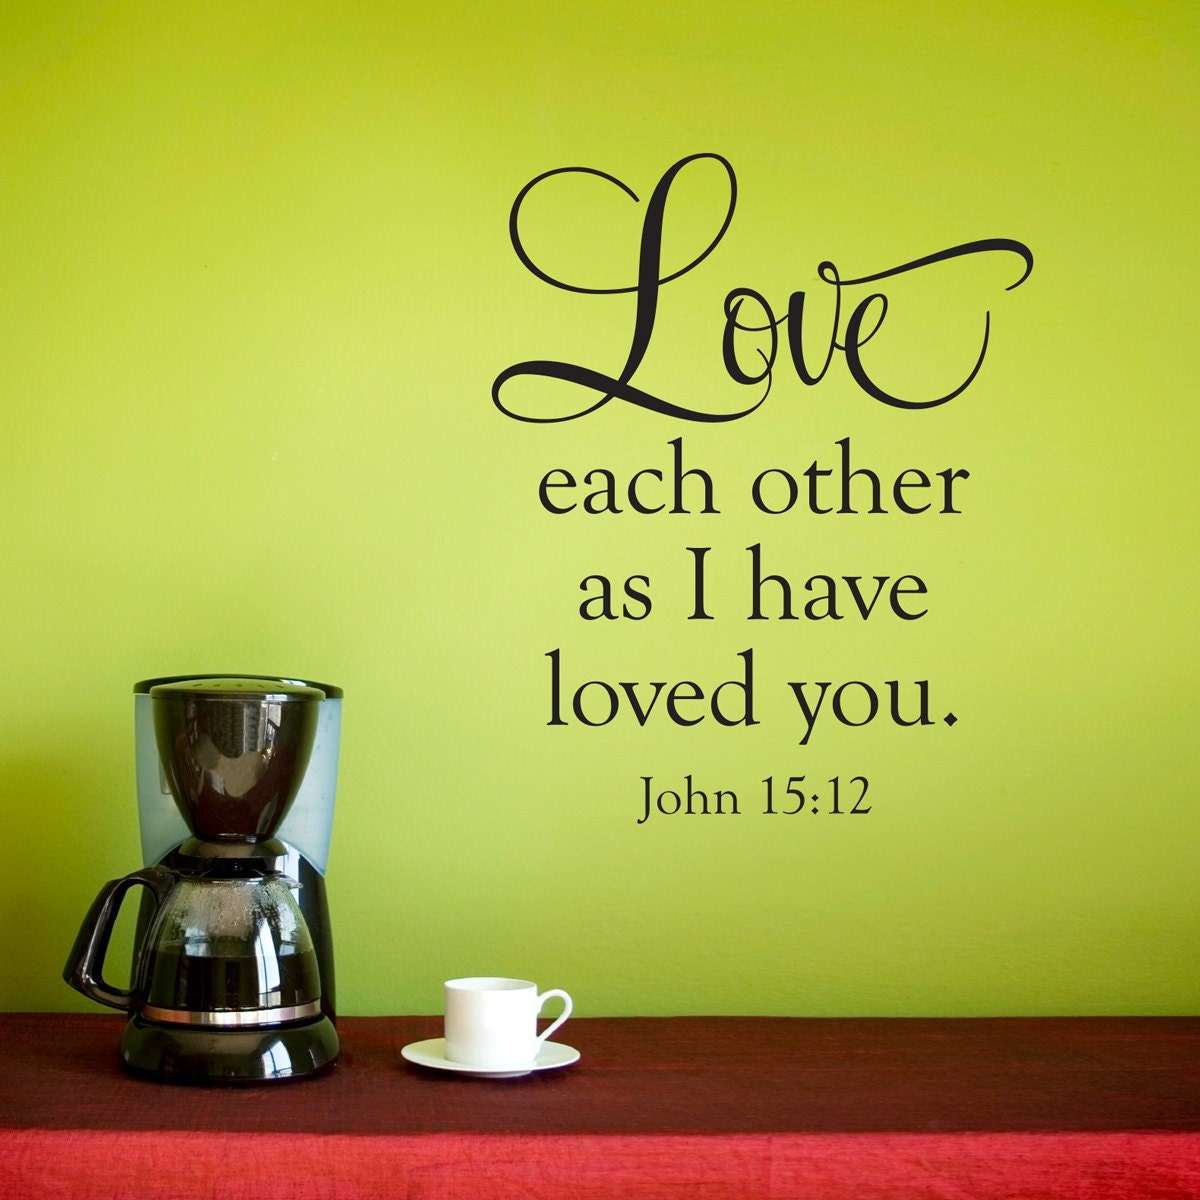 Bible Verse Wall Decal John 15:12 Love Each Other as I